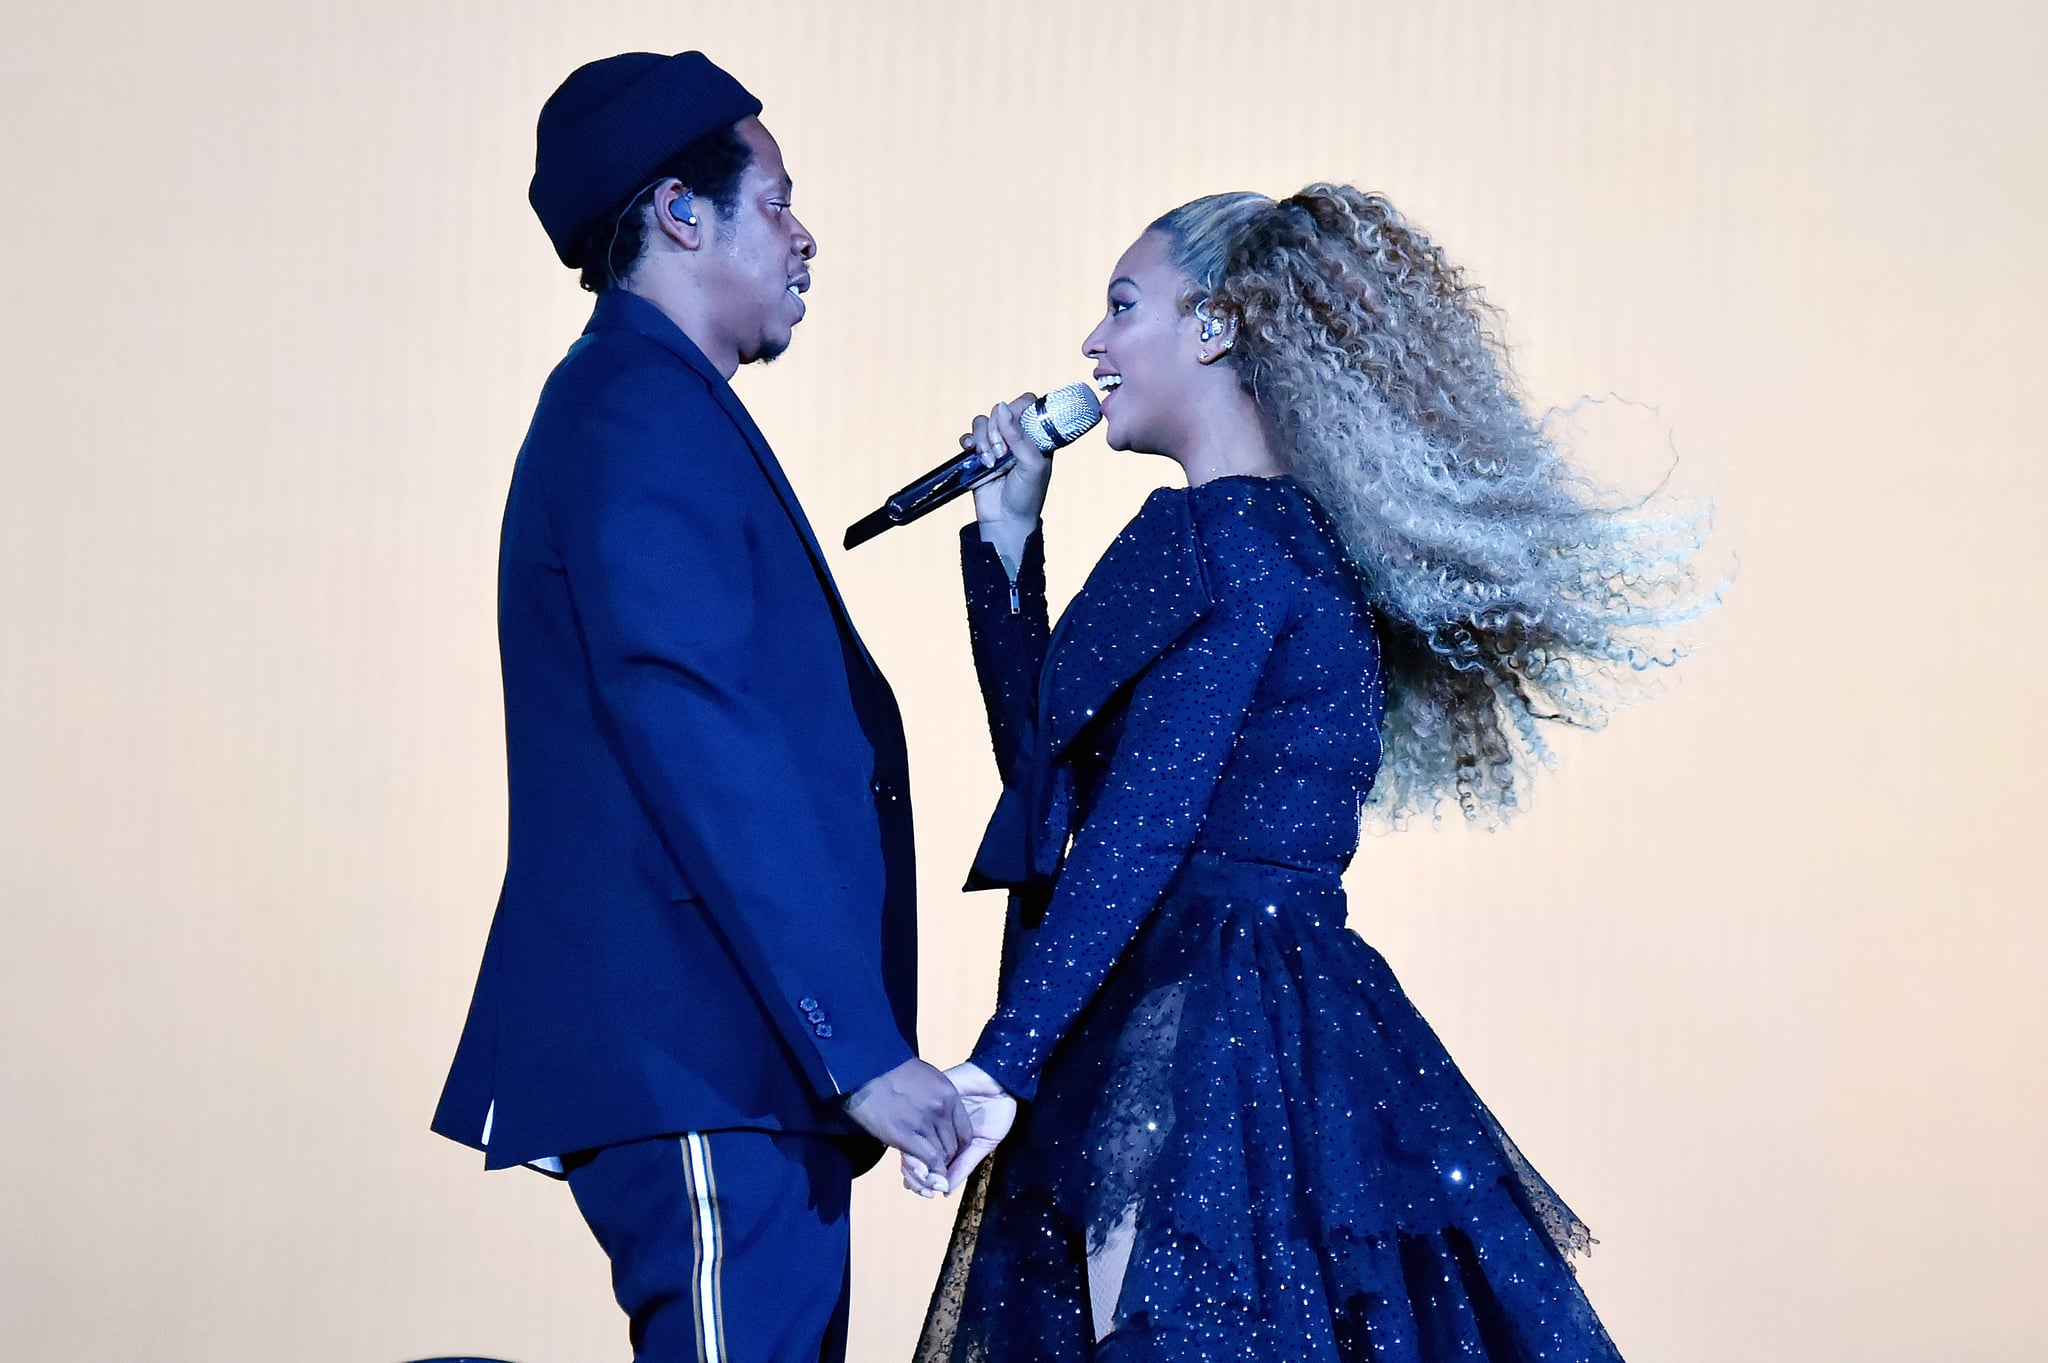 CARDIFF, WALES - JUNE 06:  Jay-Z and Beyonce Knowles perform on stage during the